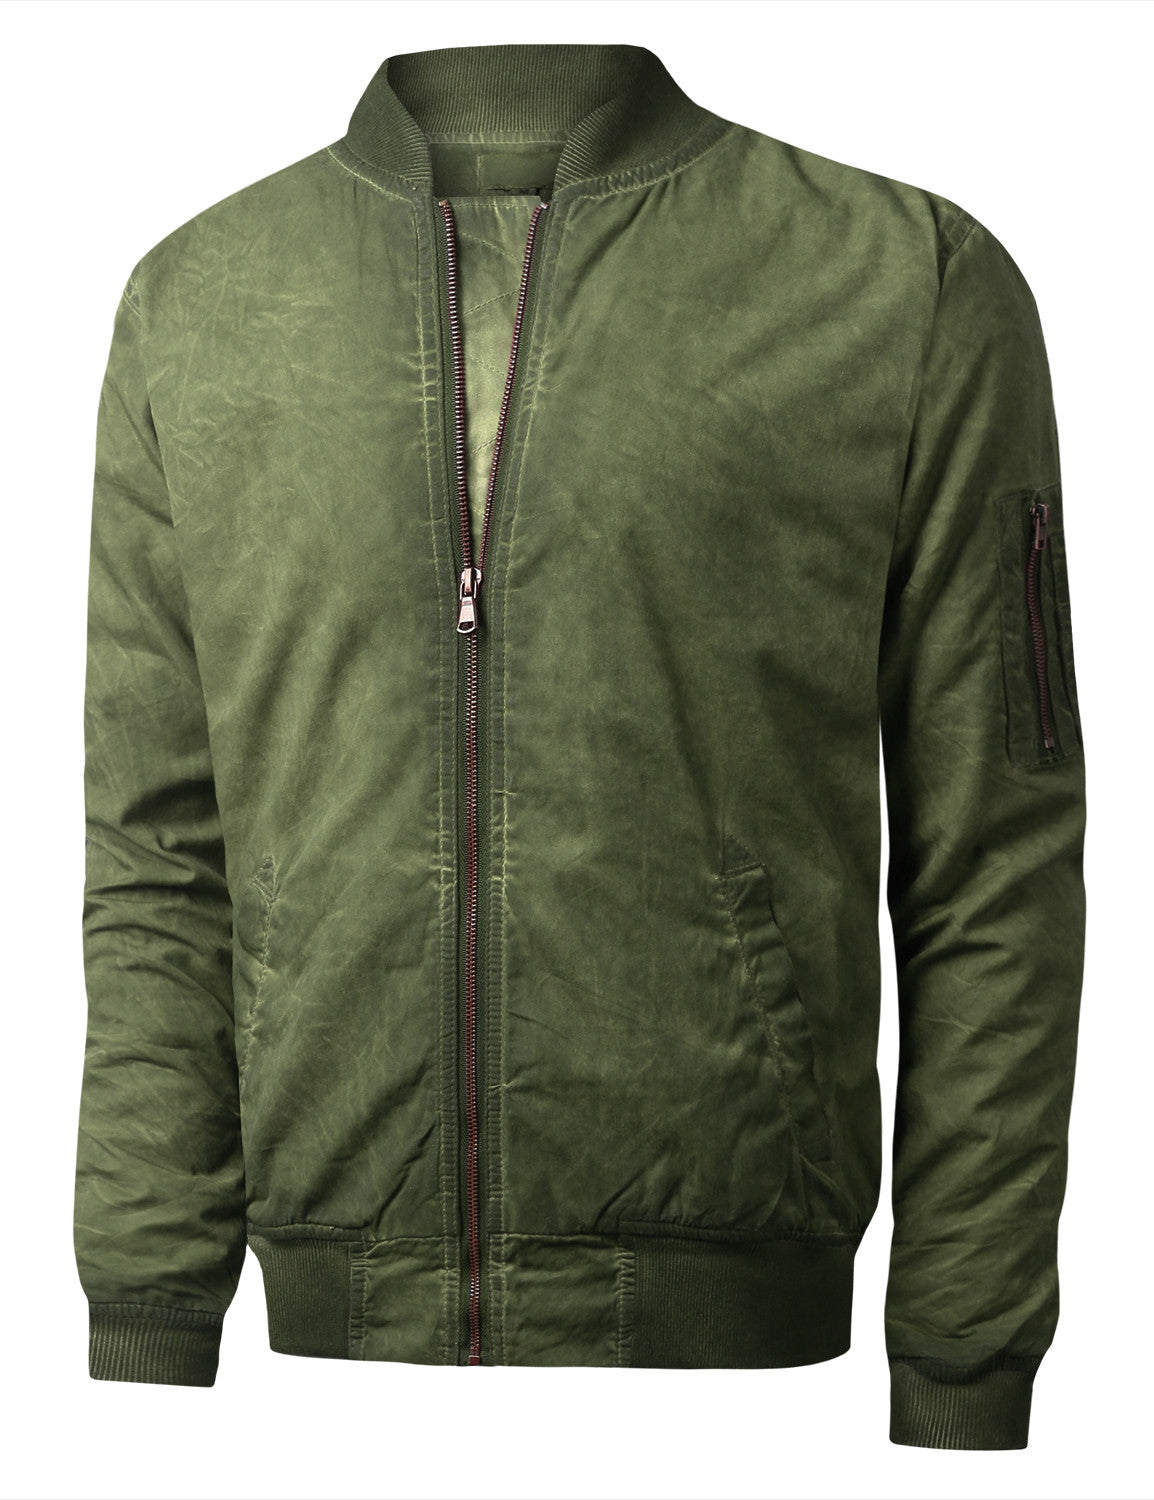 OLIVE Oil Wash Bomber Jacket - URBANCREWS